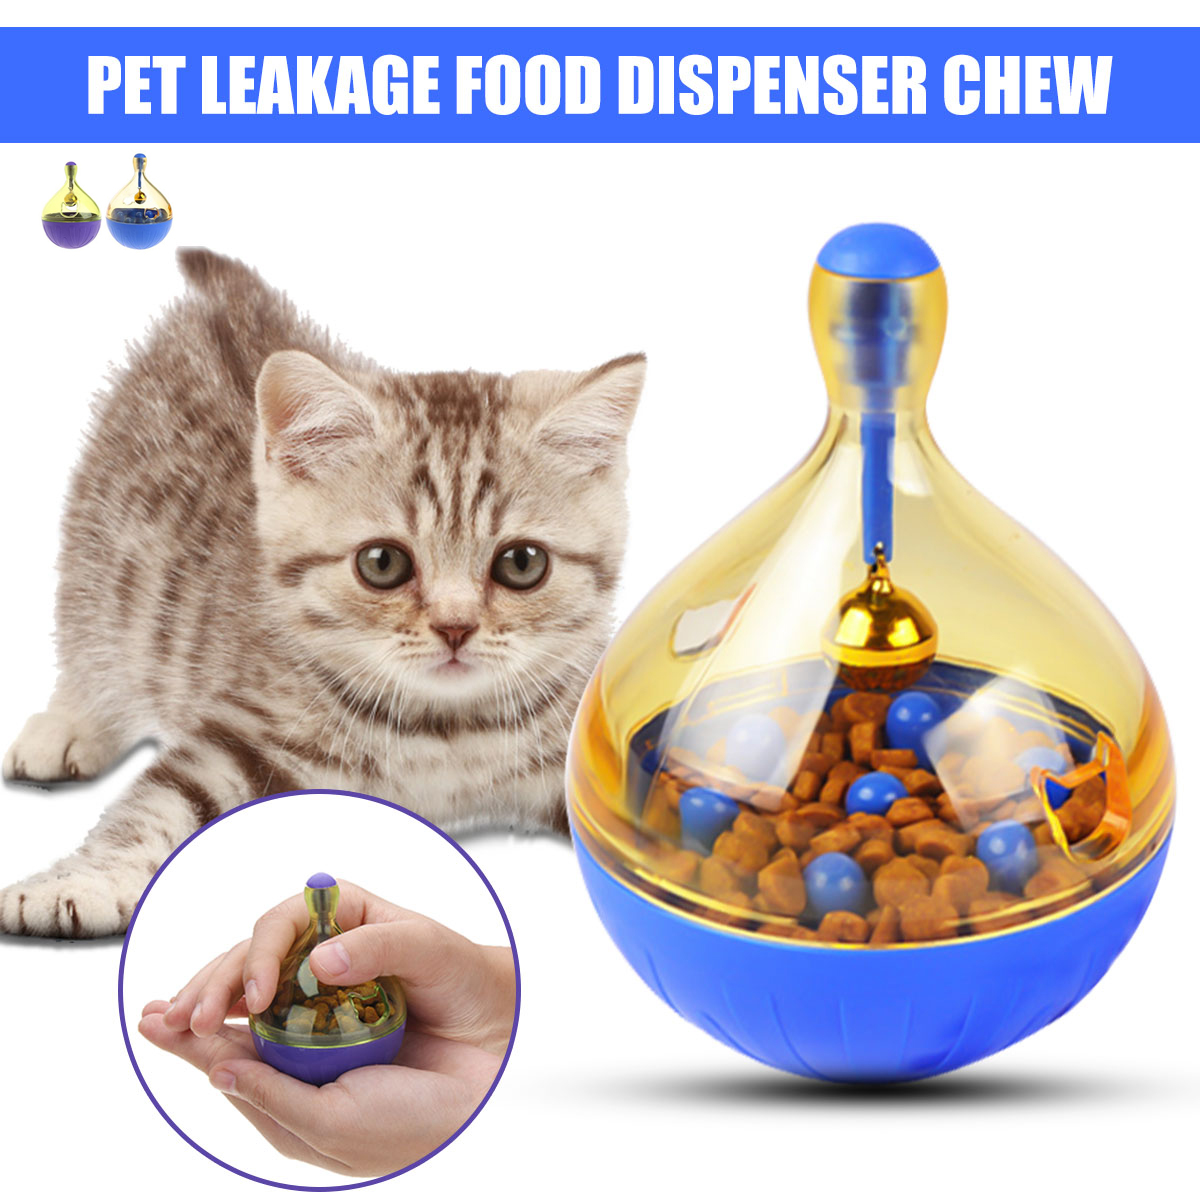 S/L Pet Dog Cat Puppy Tumbler Leakage Food Dispenser Feeder Interactive Toy